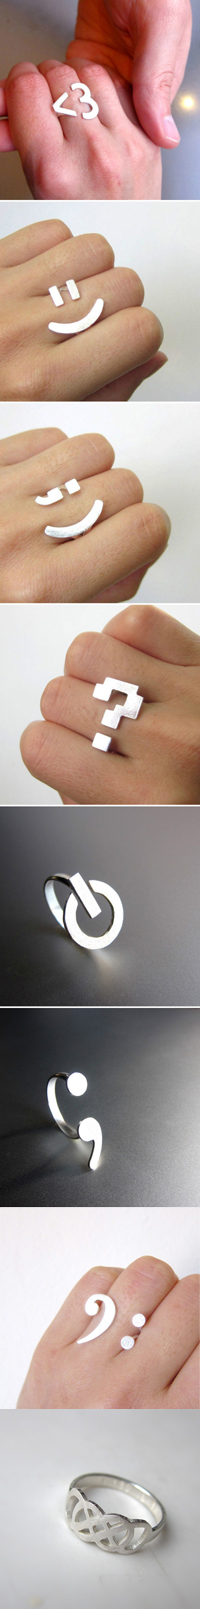 Smilely face emoticon silver ring